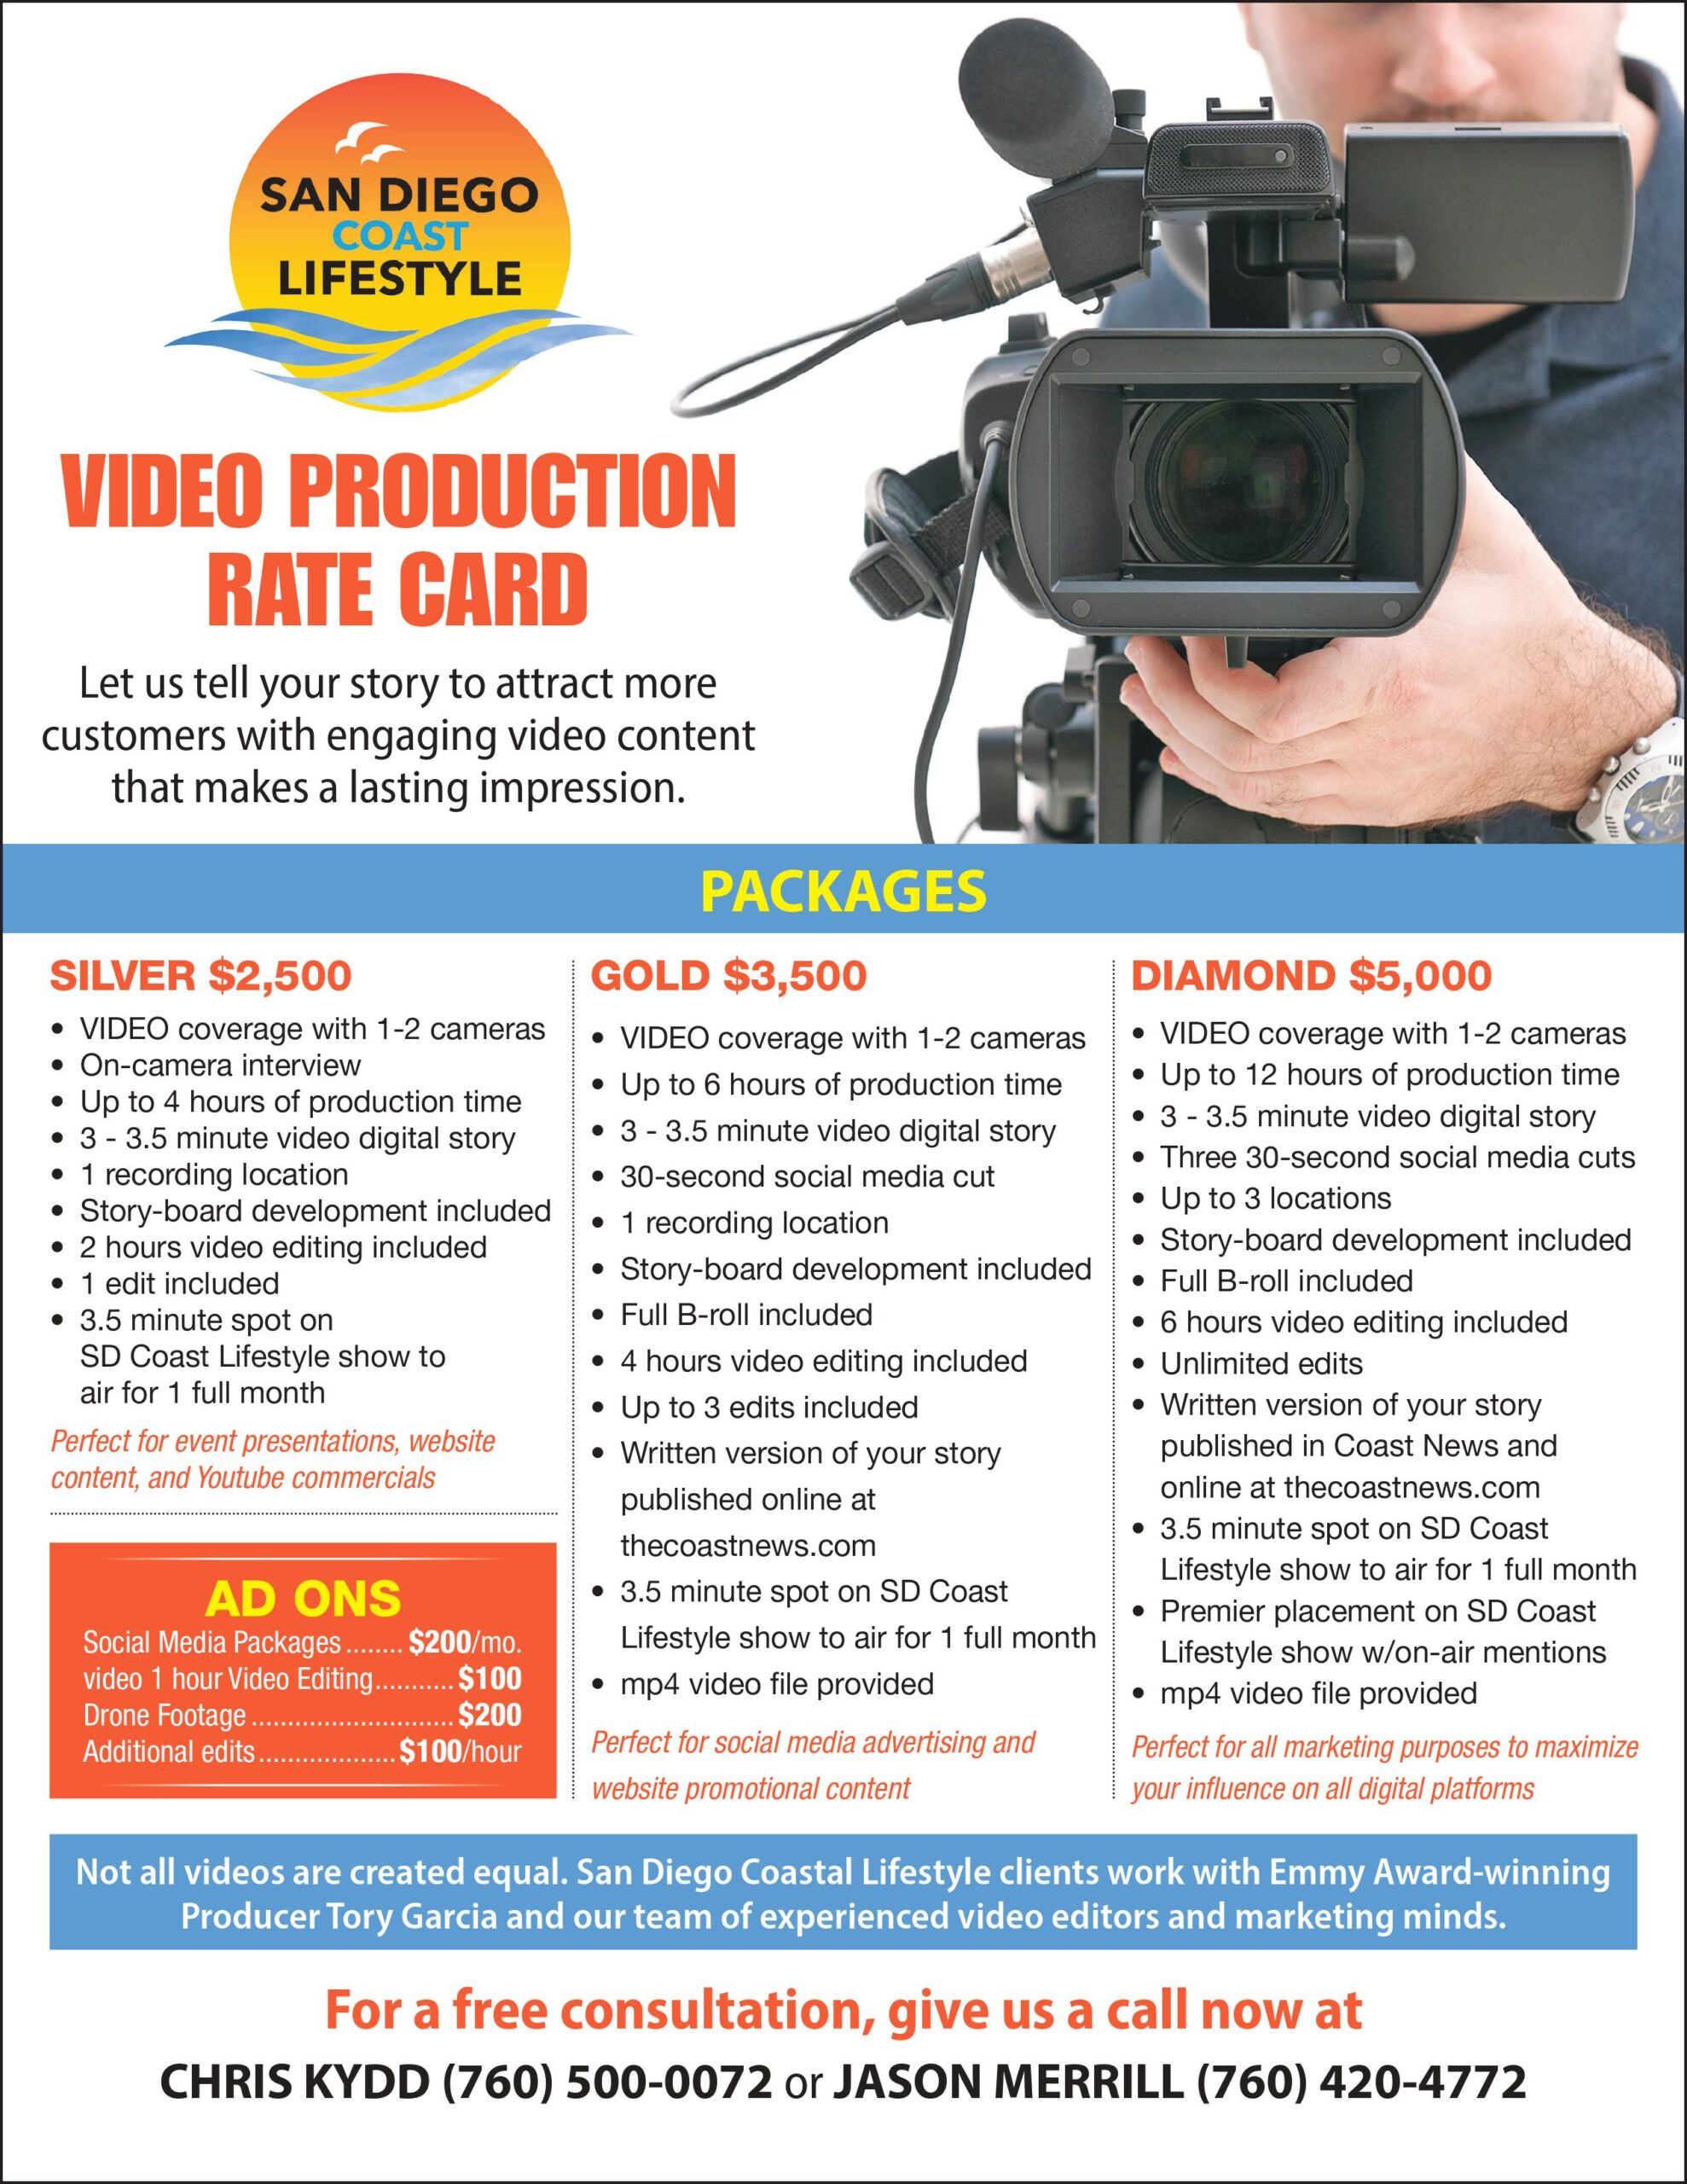 Video production service in San Diego